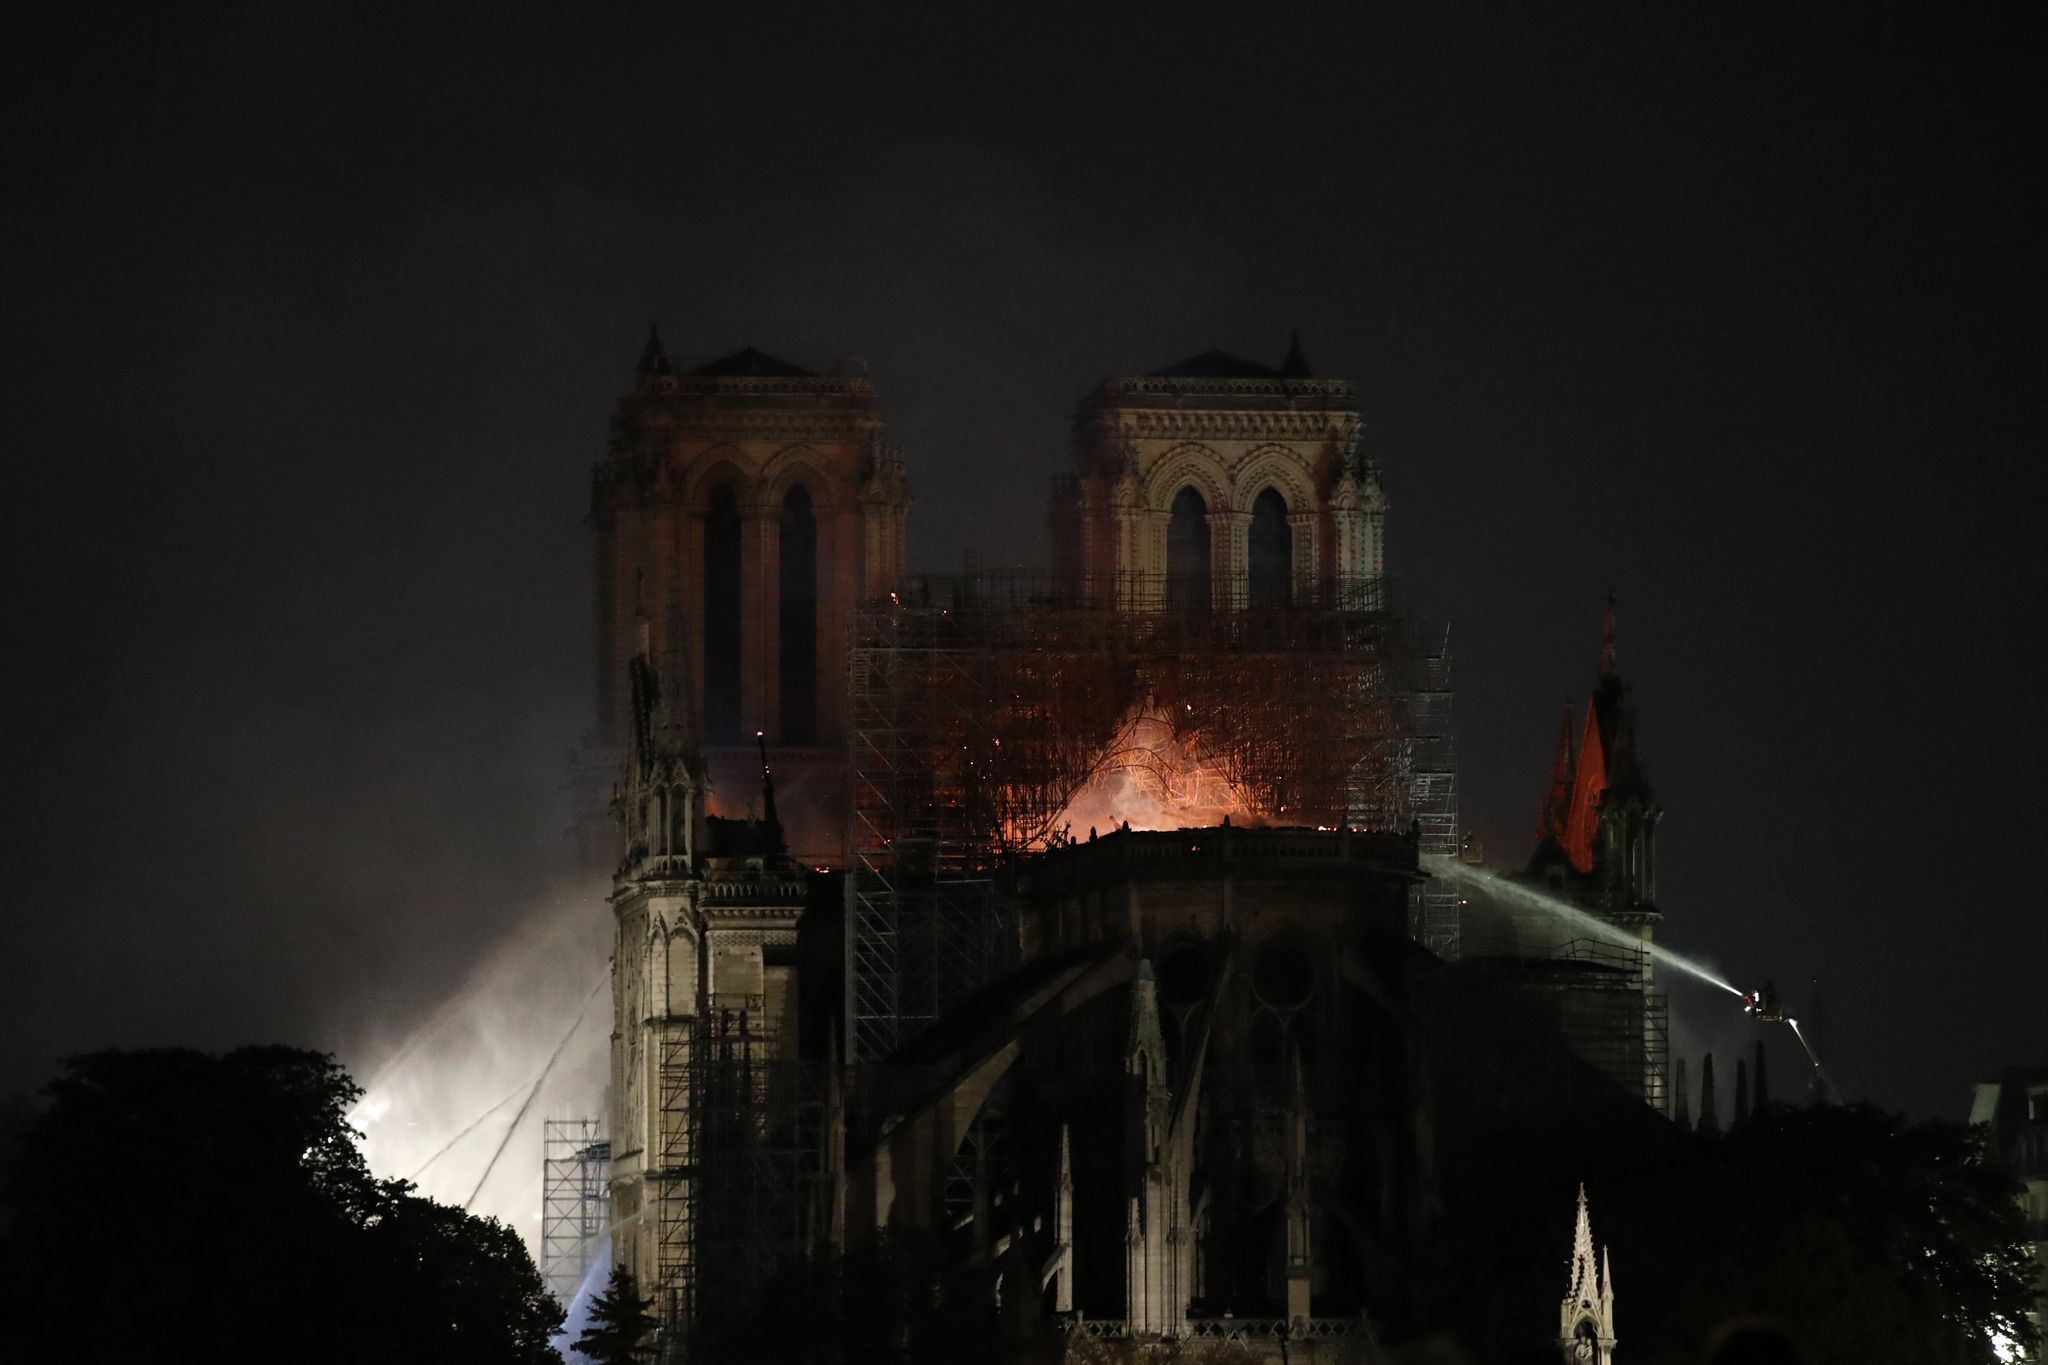 Notre Dame arson, terrorism ruled out for now, Paris prosecutors' office says